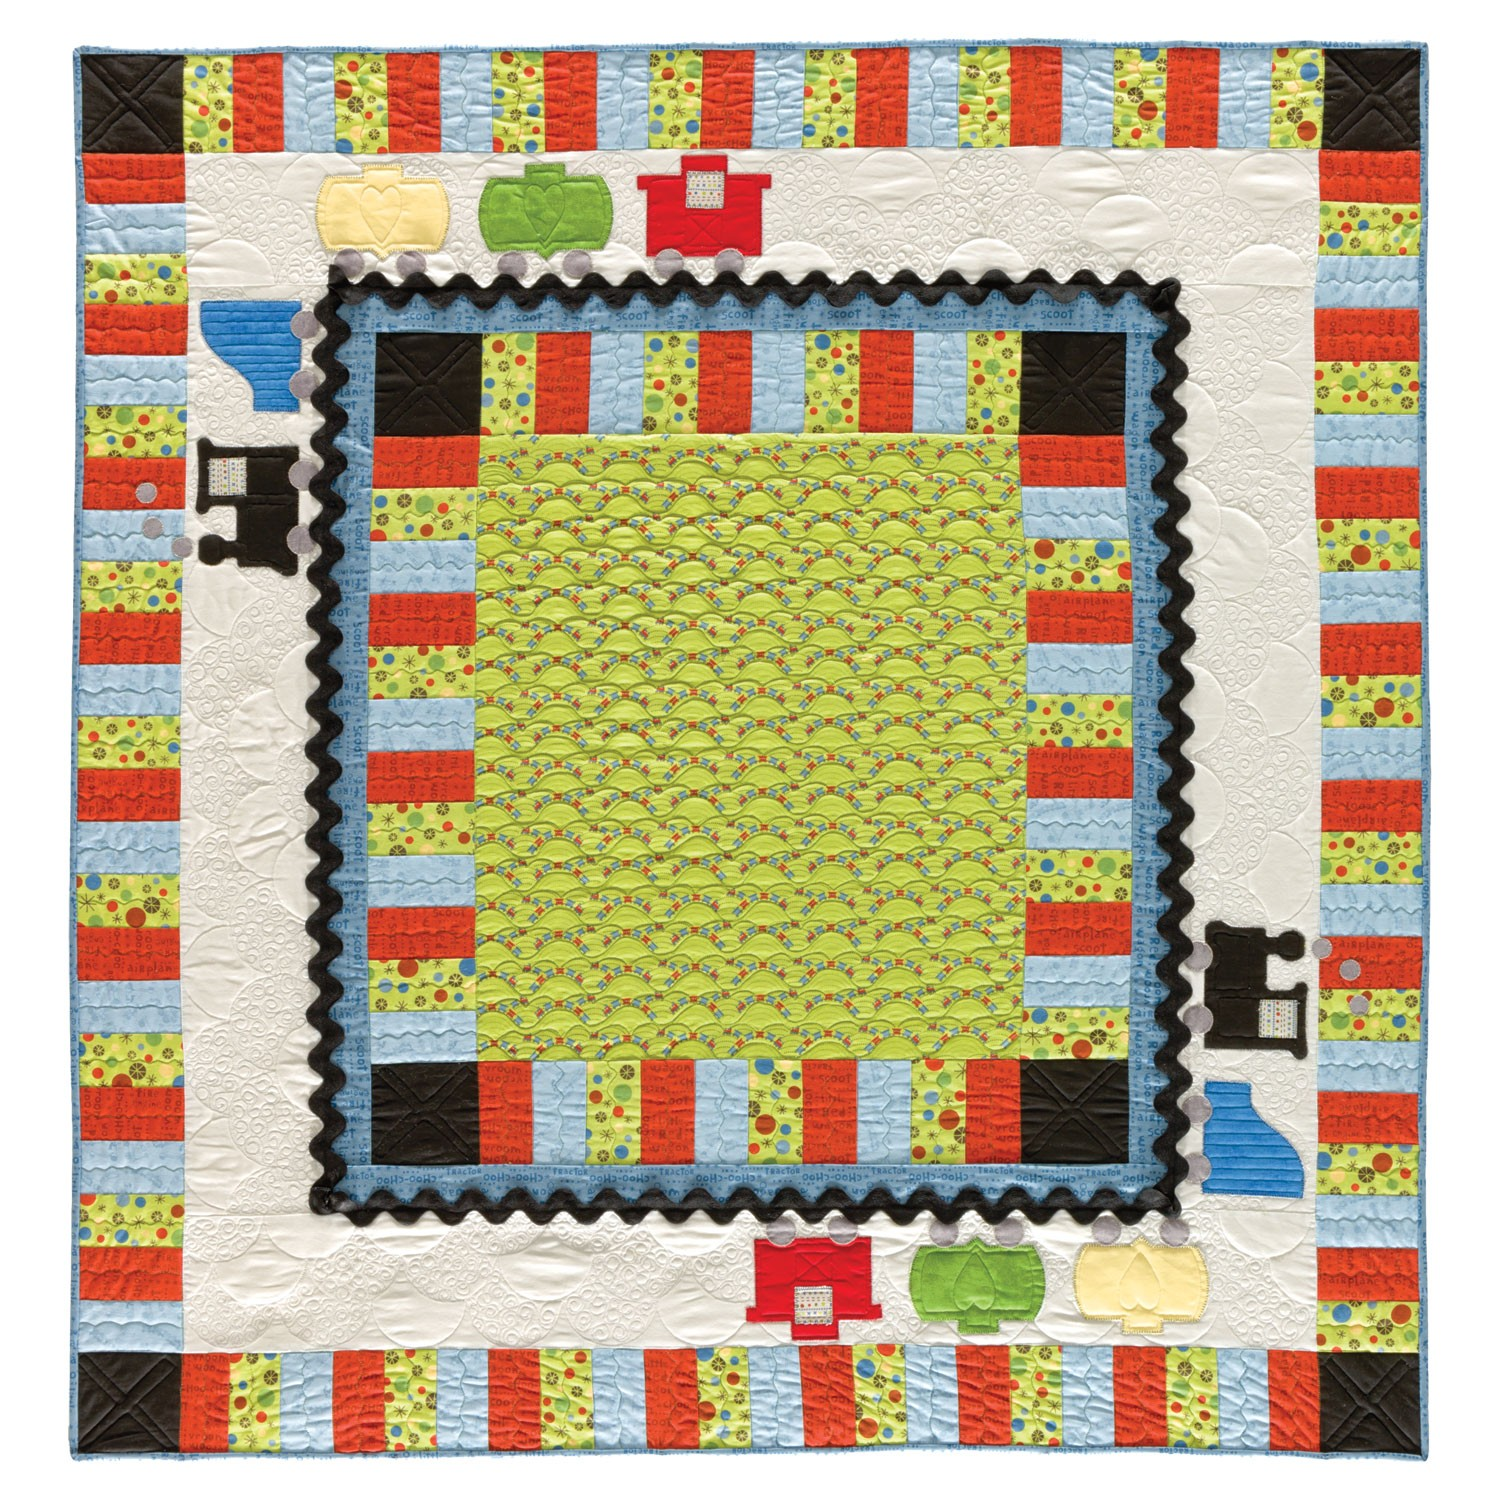 Accuquilt go train quilt die 55367 for Fabric with trains pattern